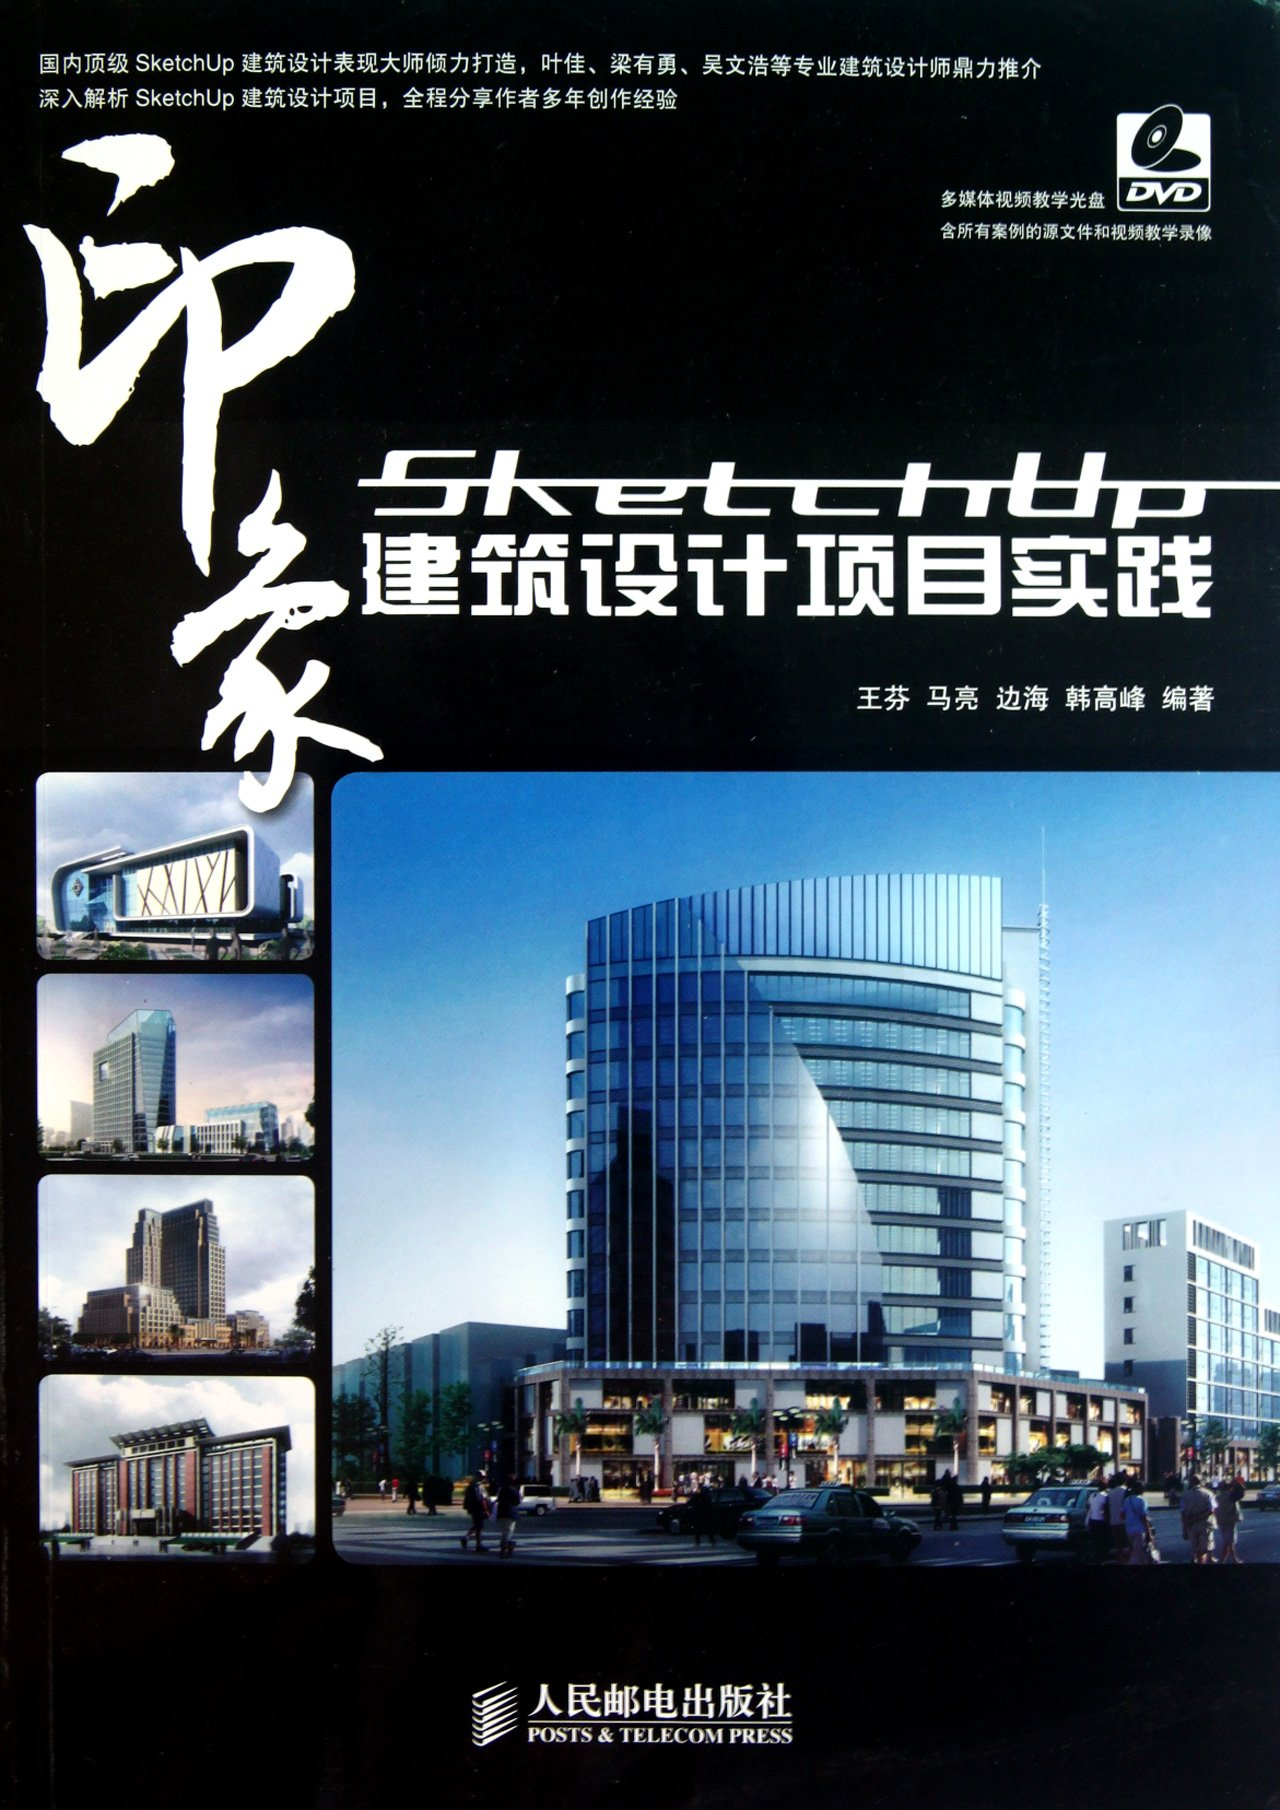 Practice for architecture design project(color printed) (Chinese Edition) PDF